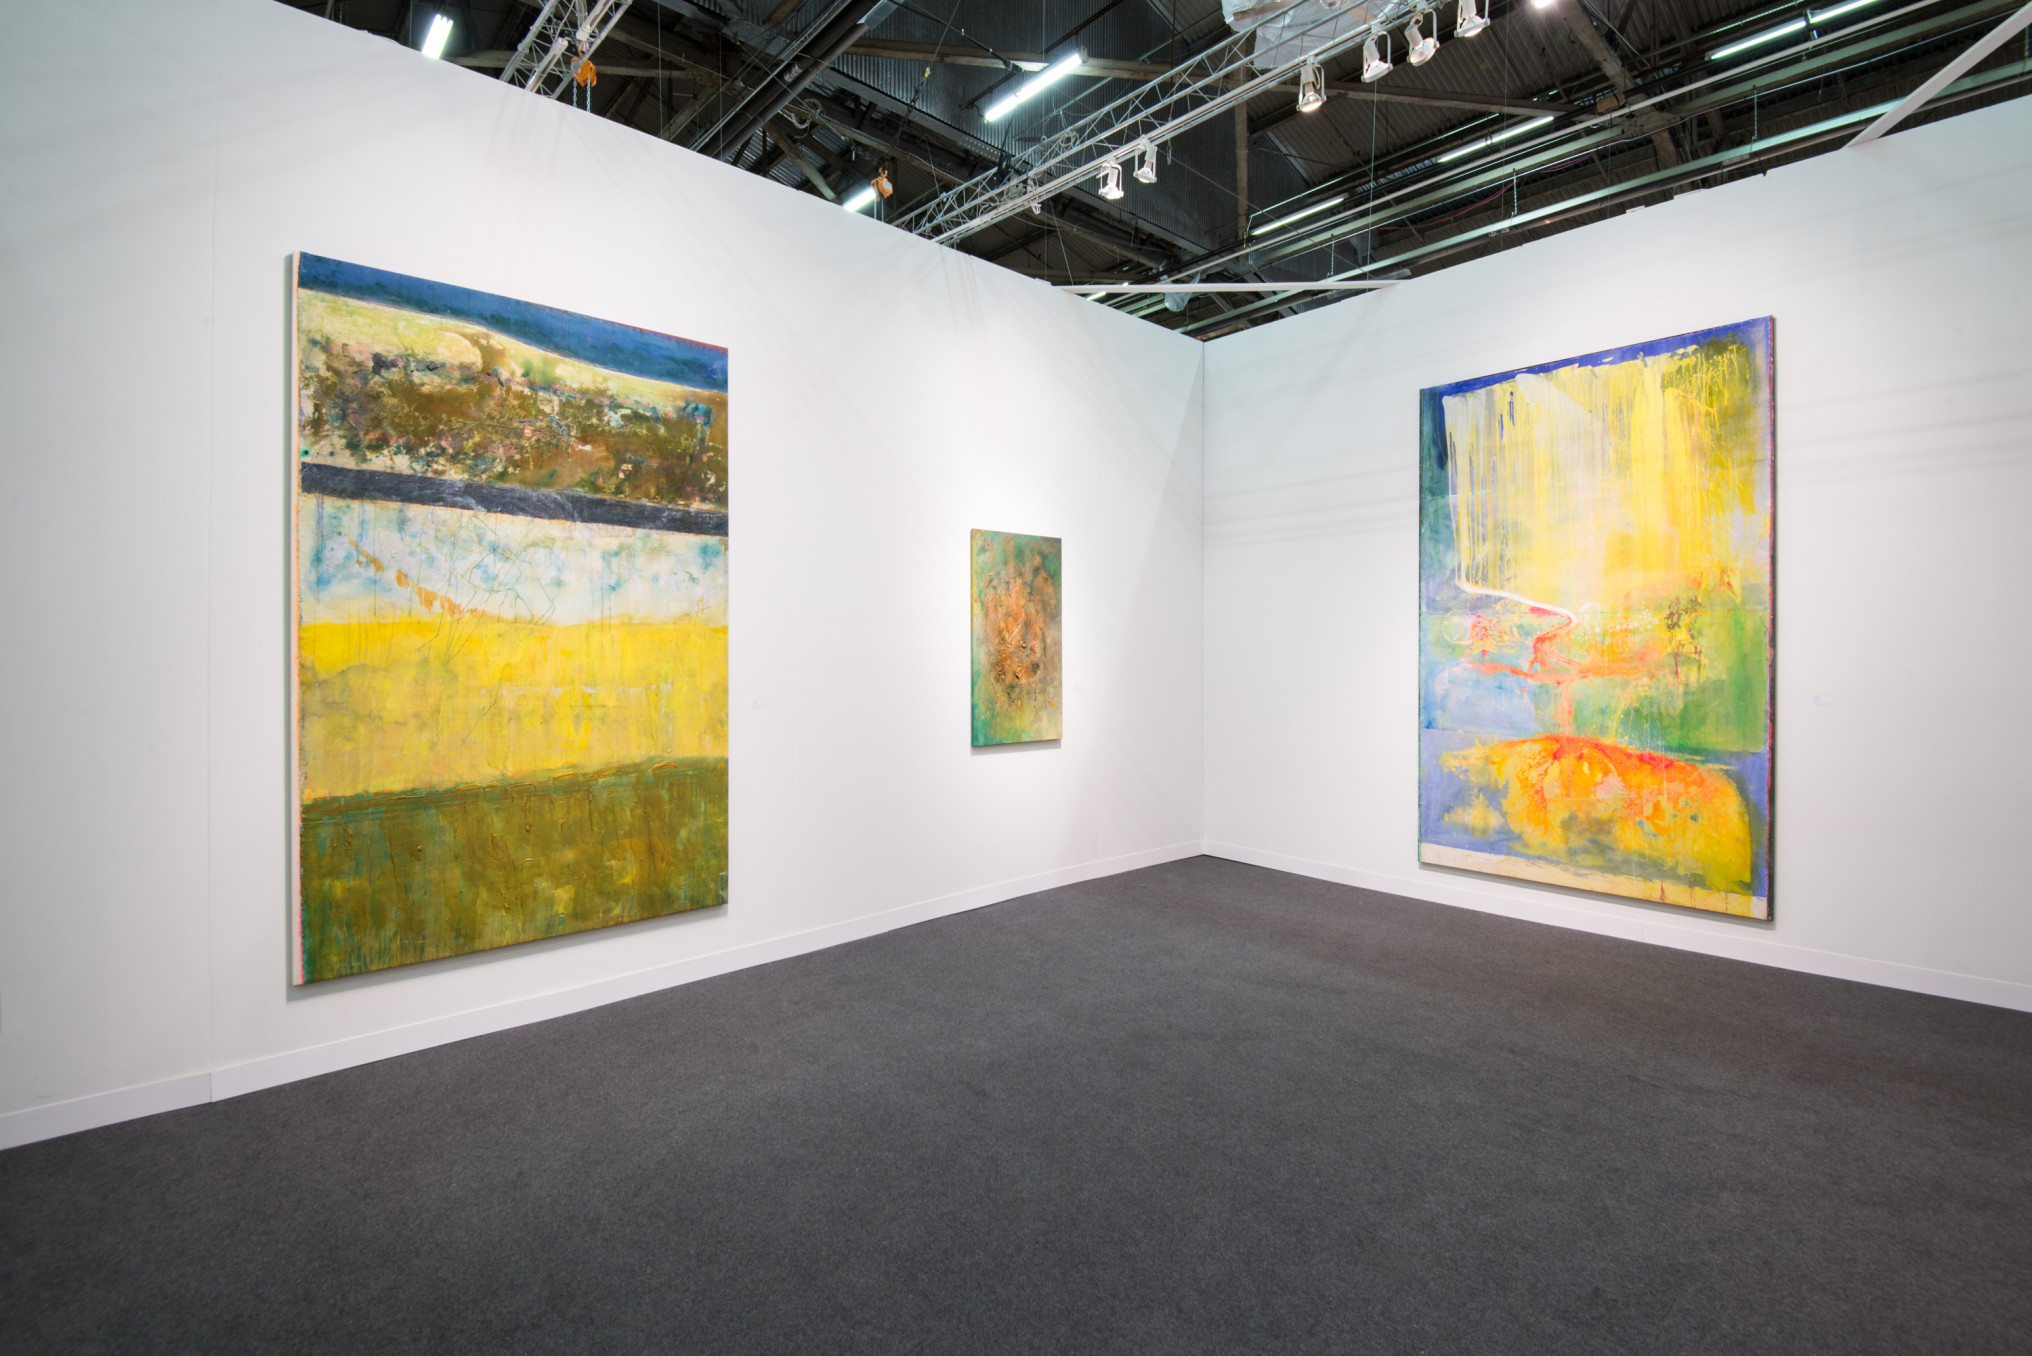 Frank Bowling, Installation view, Hales Gallery at The Armory Show 2016   Pier 94 Booth 743, New York, 3 - 6 March 2016